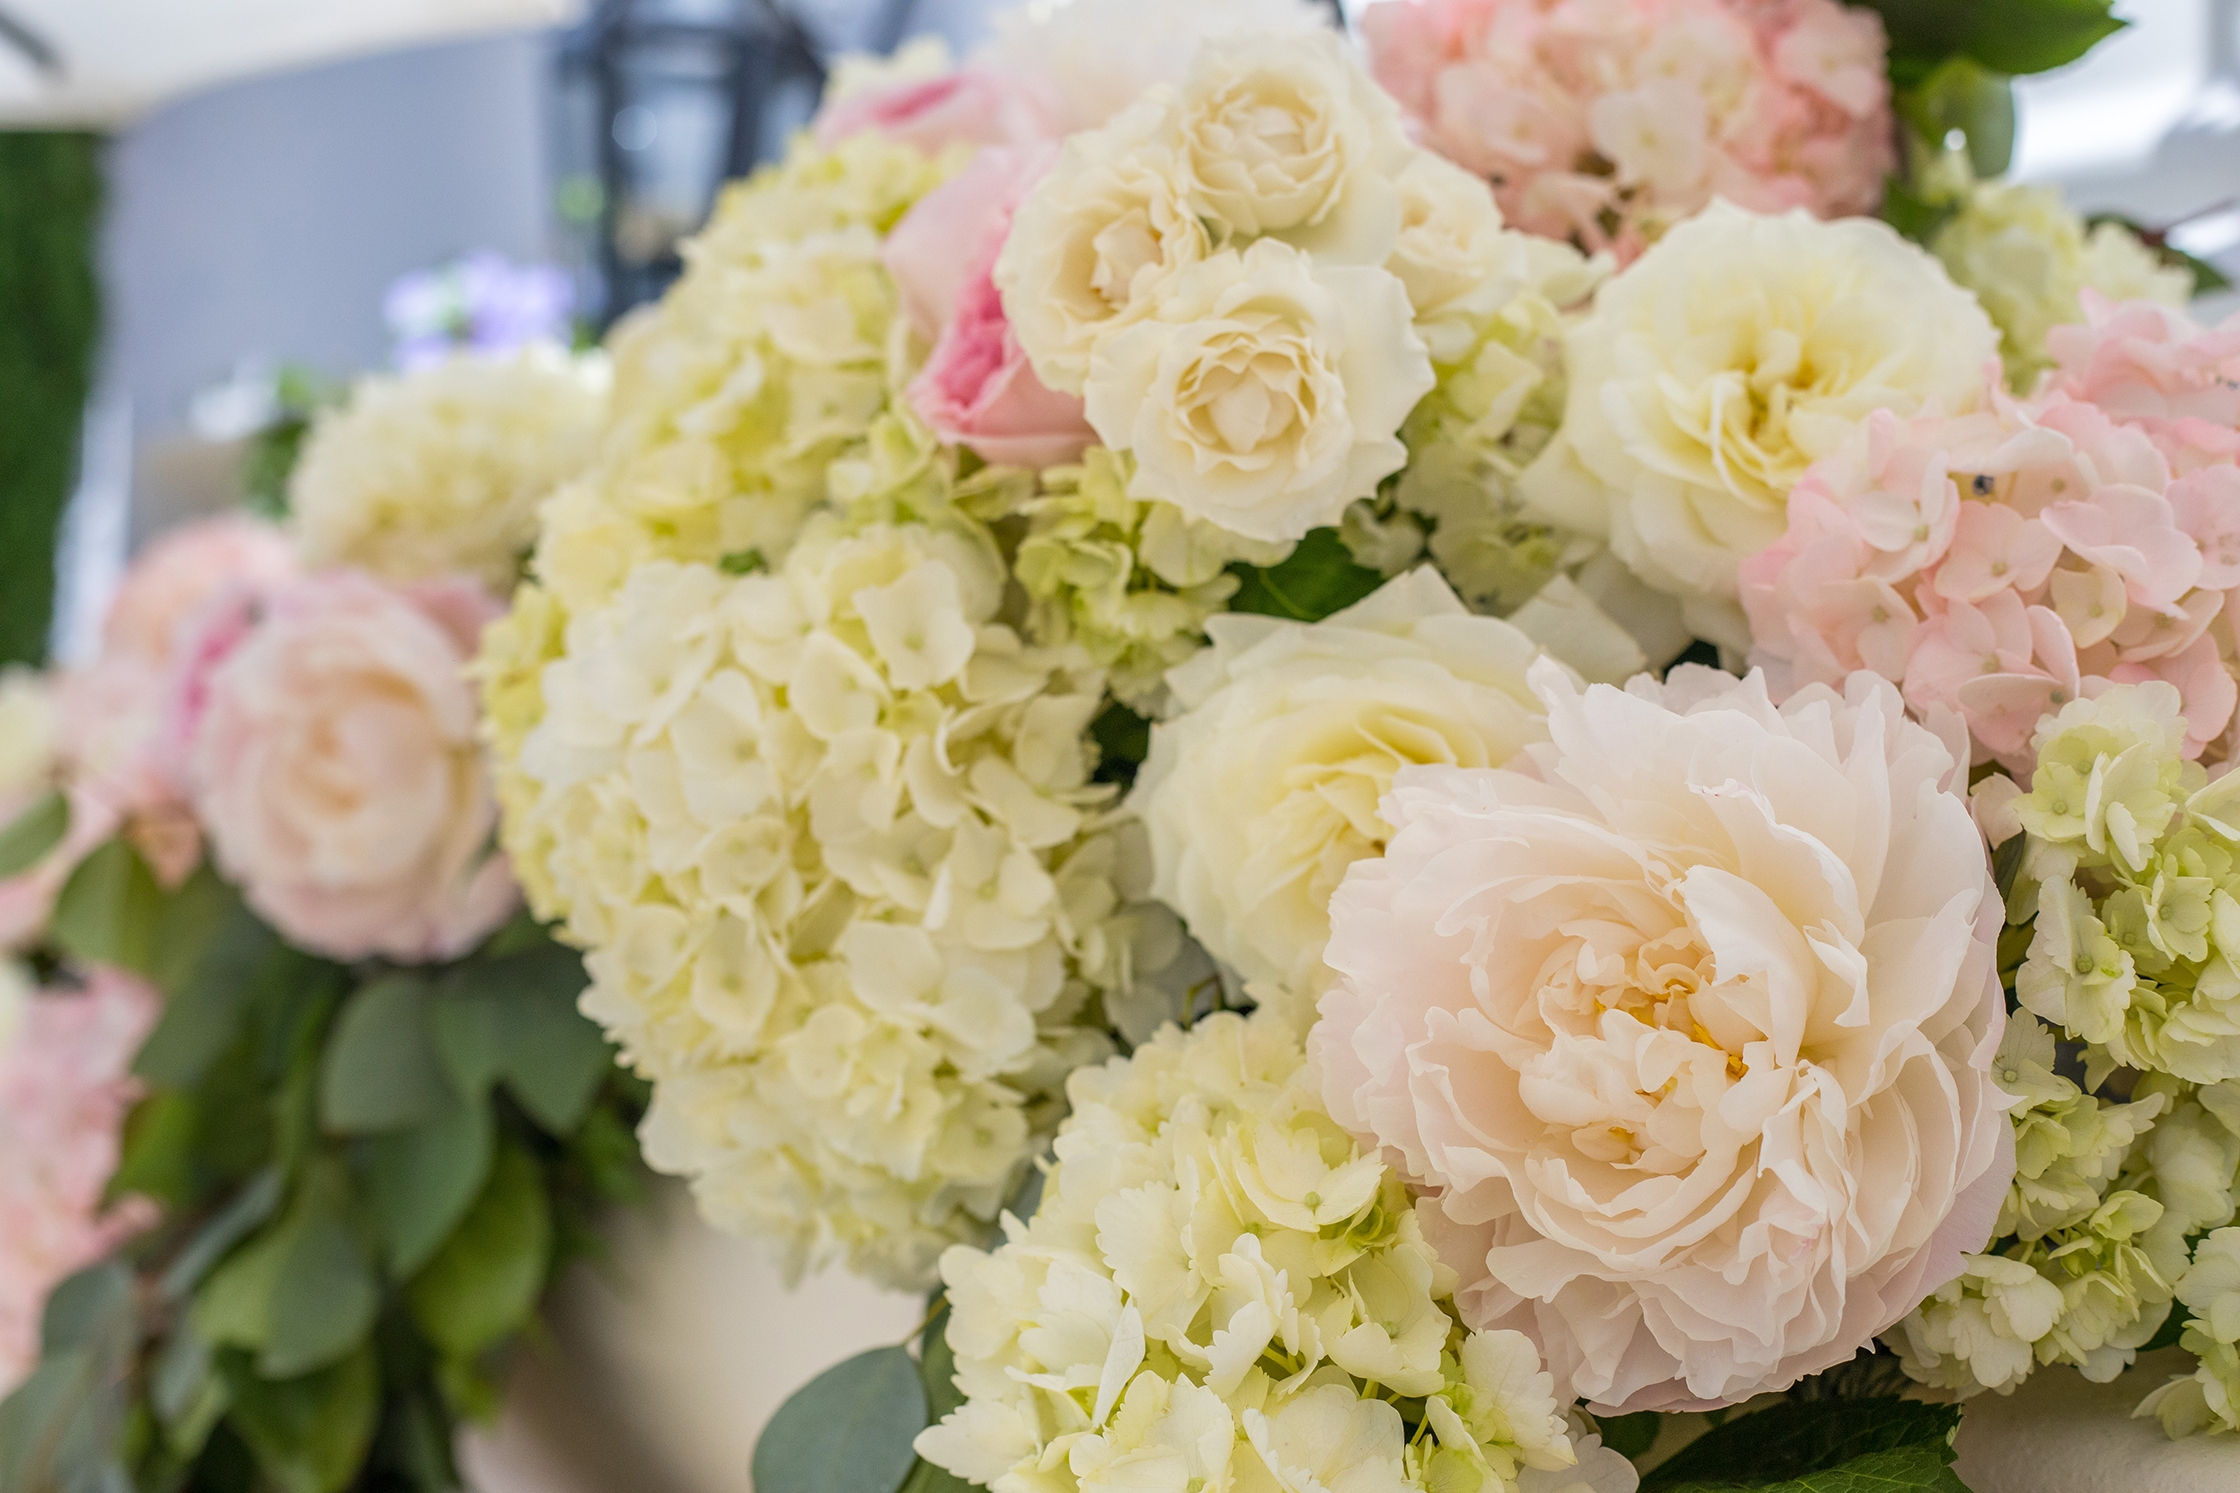 An image of a white, light pink rose and white hydrangea floral from the Dunzer Wedding